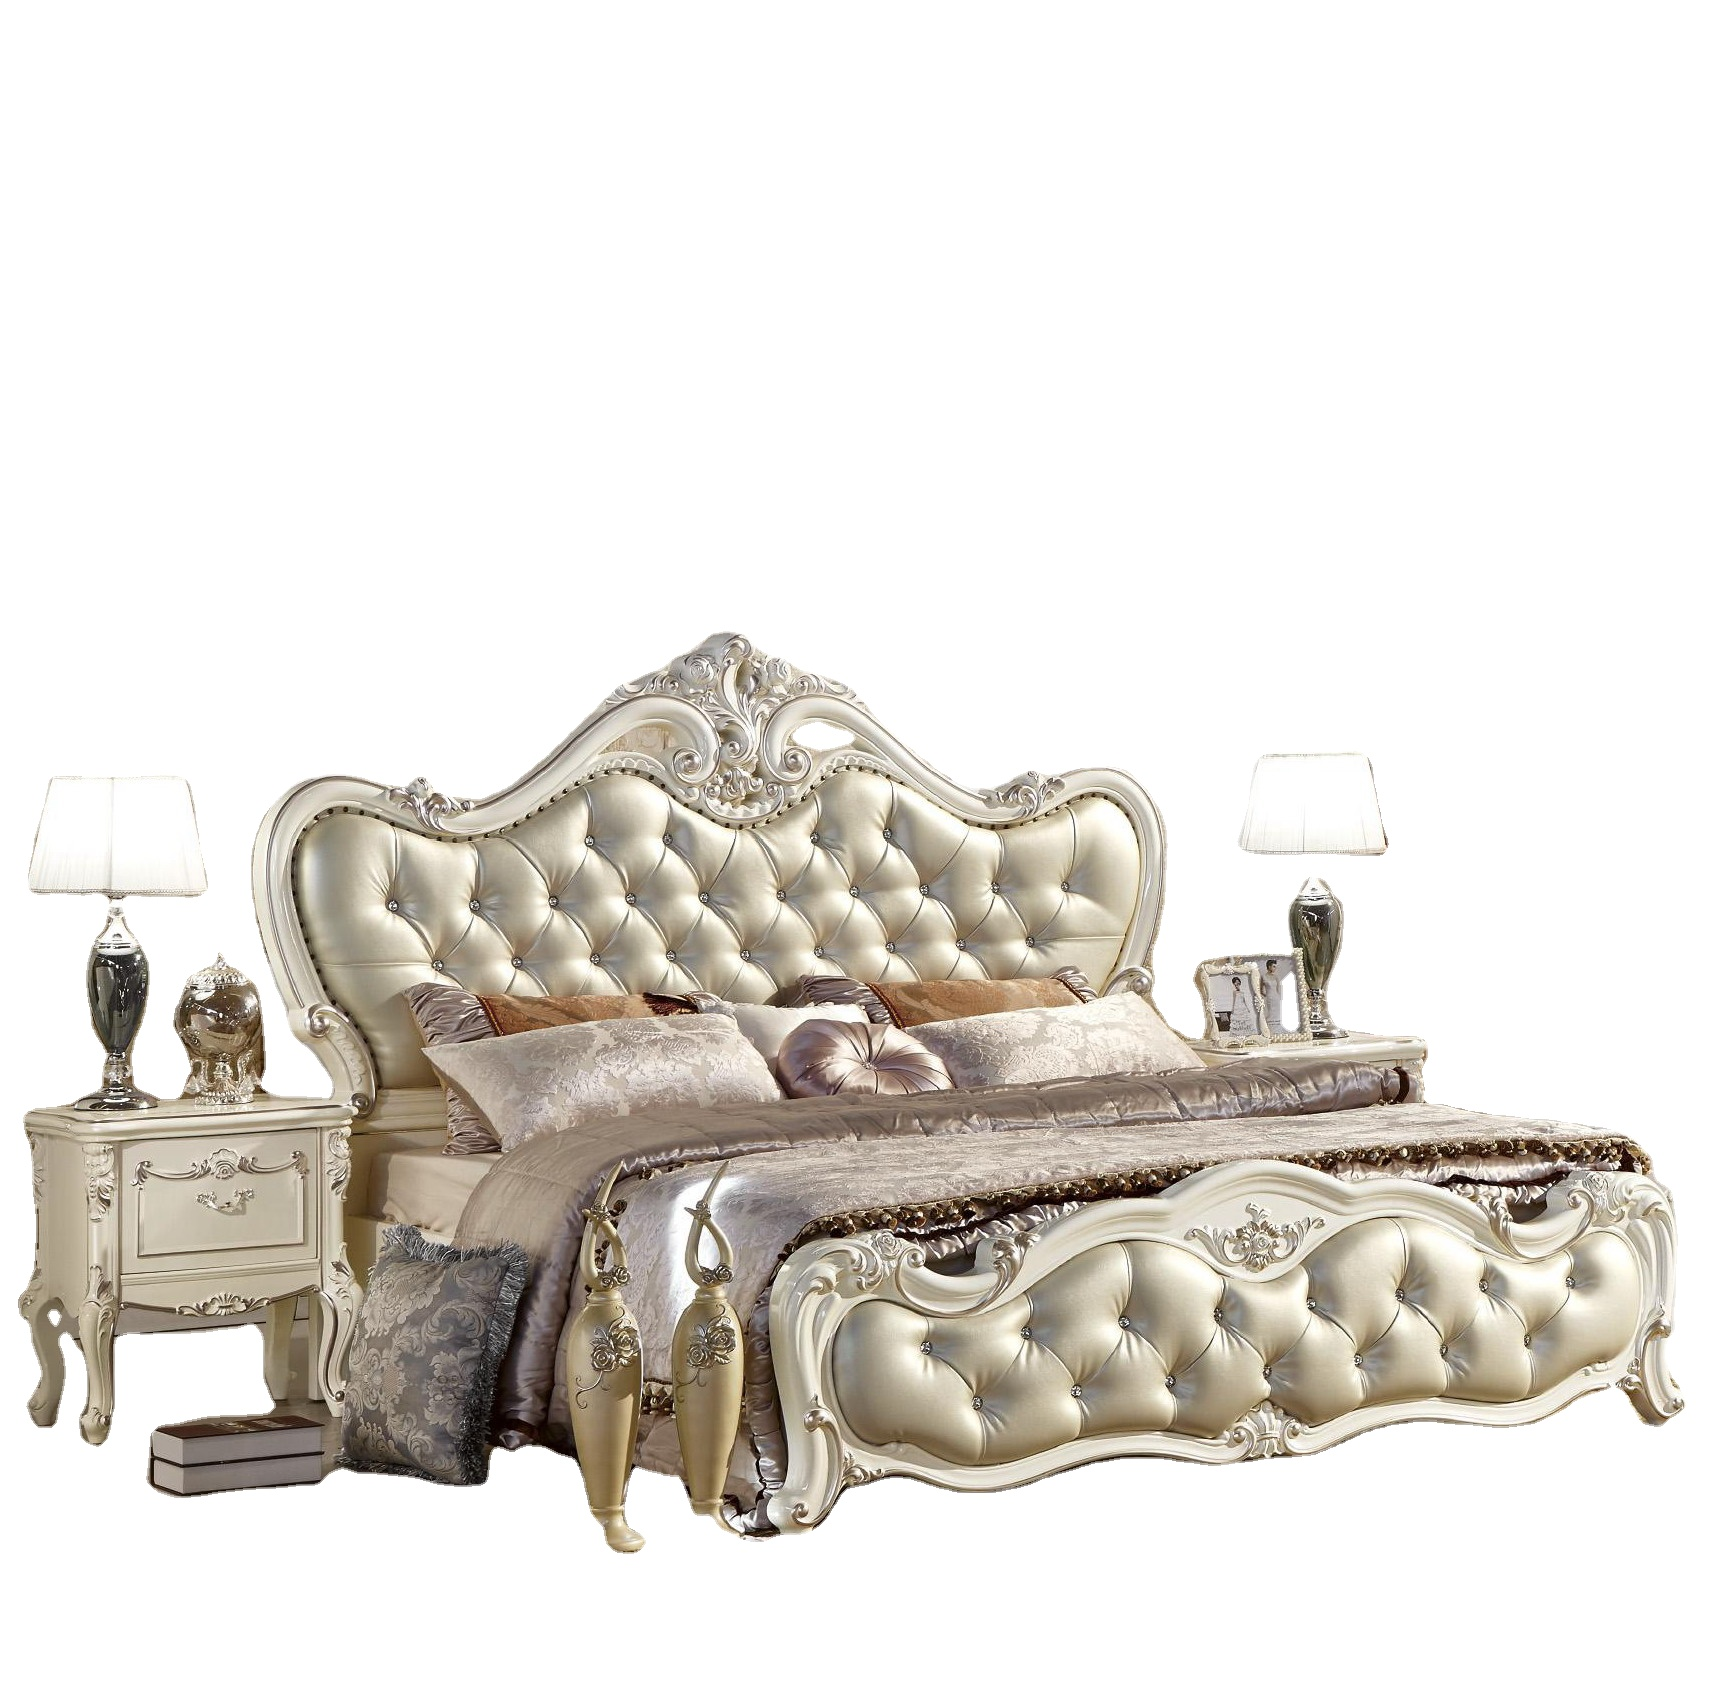 Glossy European Luxury Bedroom Set Furniture King Size Bed Mirrored Bedroom Furniture Set Buy Mirrored Bedroom Furniture Set Luxury Bedroom Set Furniture King Size Bed Bed Set Furniture Bedroom Product On Alibaba Com